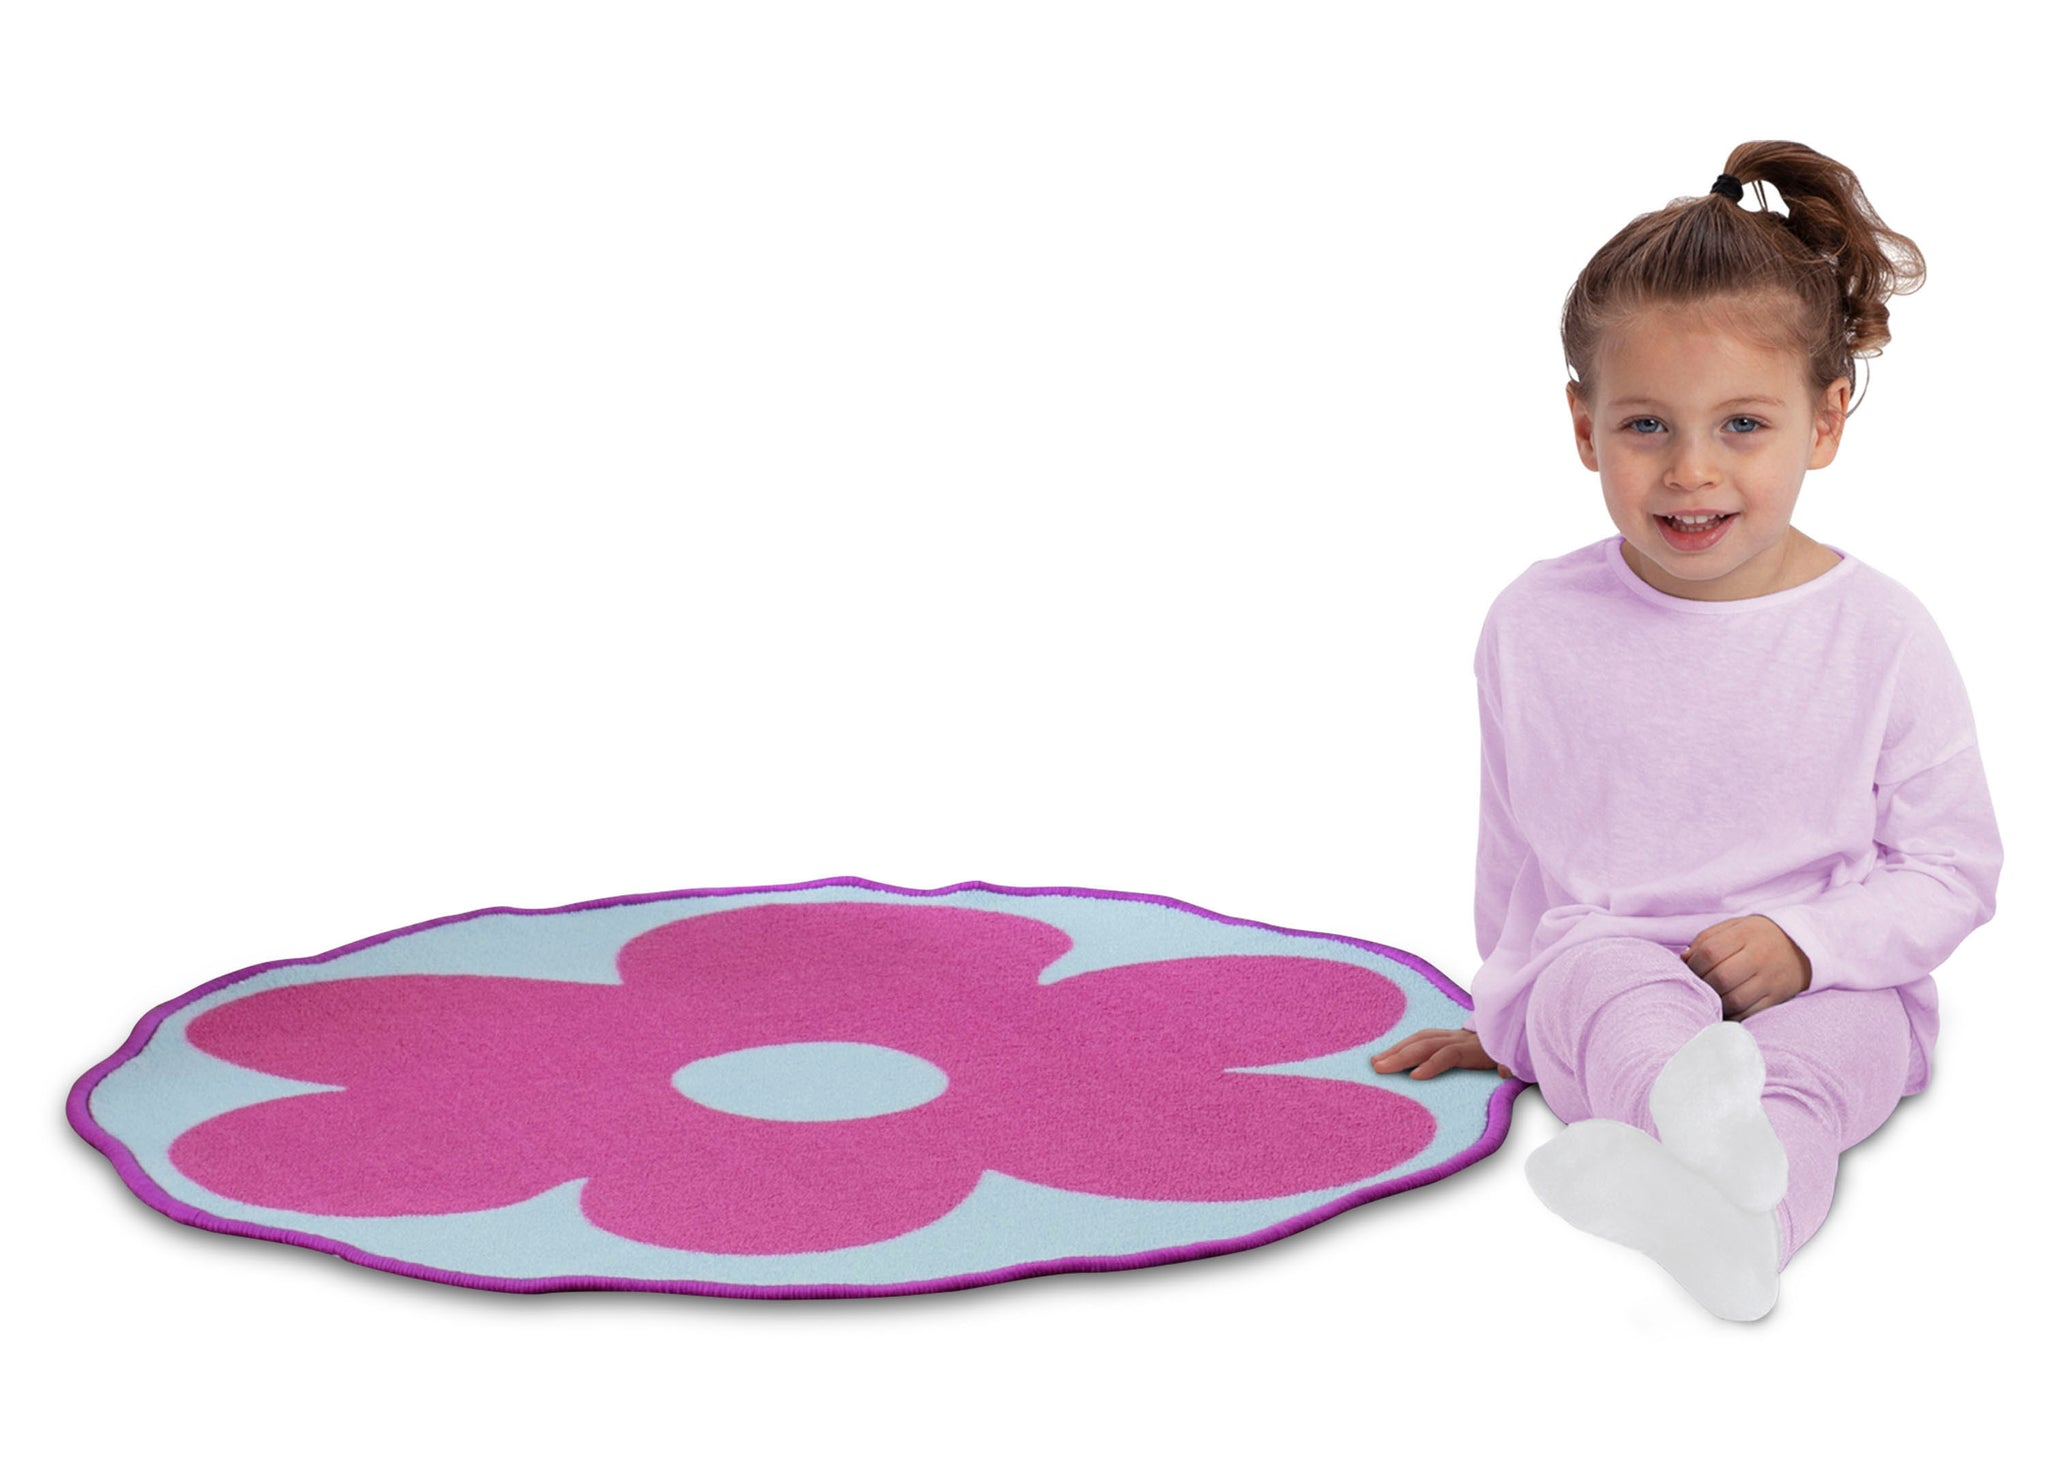 Delta Children Flower (3009) Non-Slip Area Rug for Boys, Model View